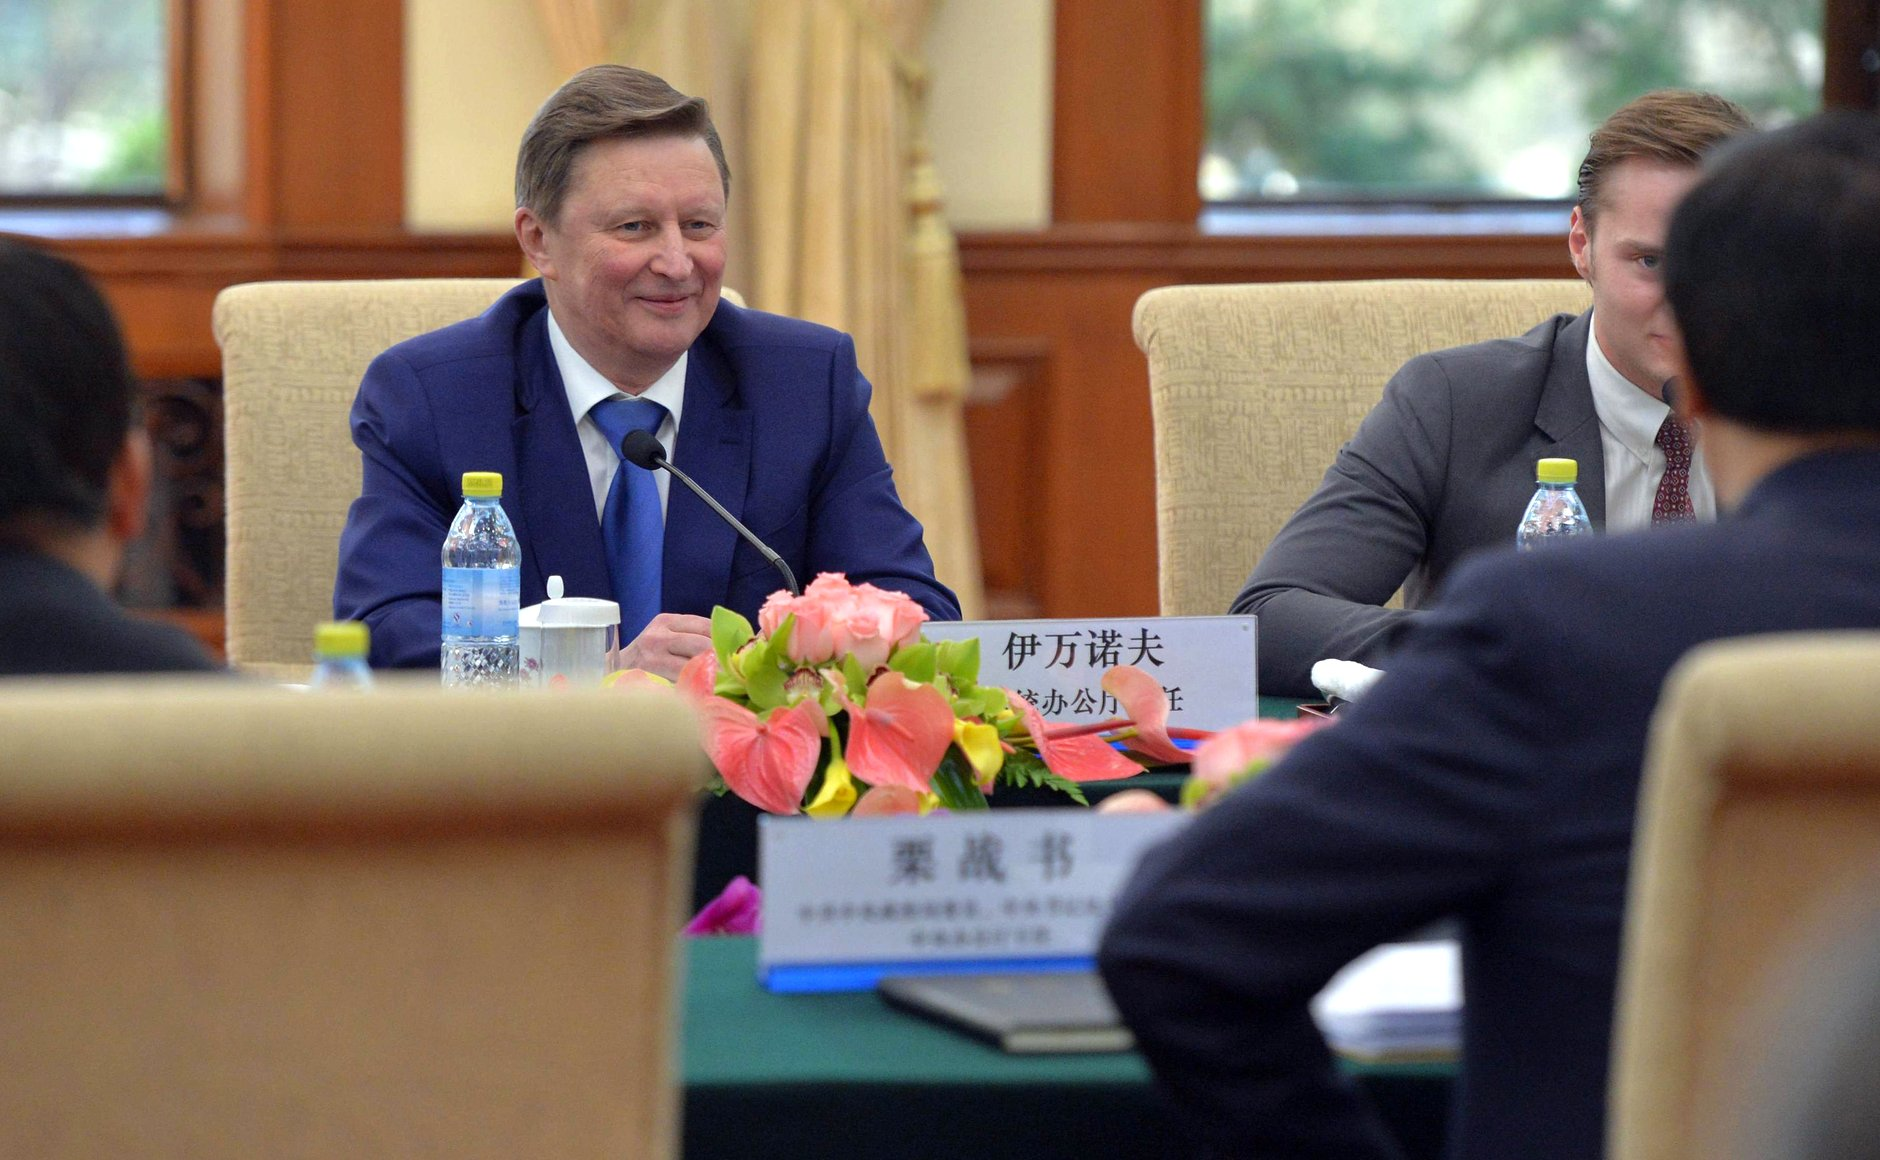 Sergei Ivanov during talks with Director of General Office of Chinese Communist Party Li Zhanshu.